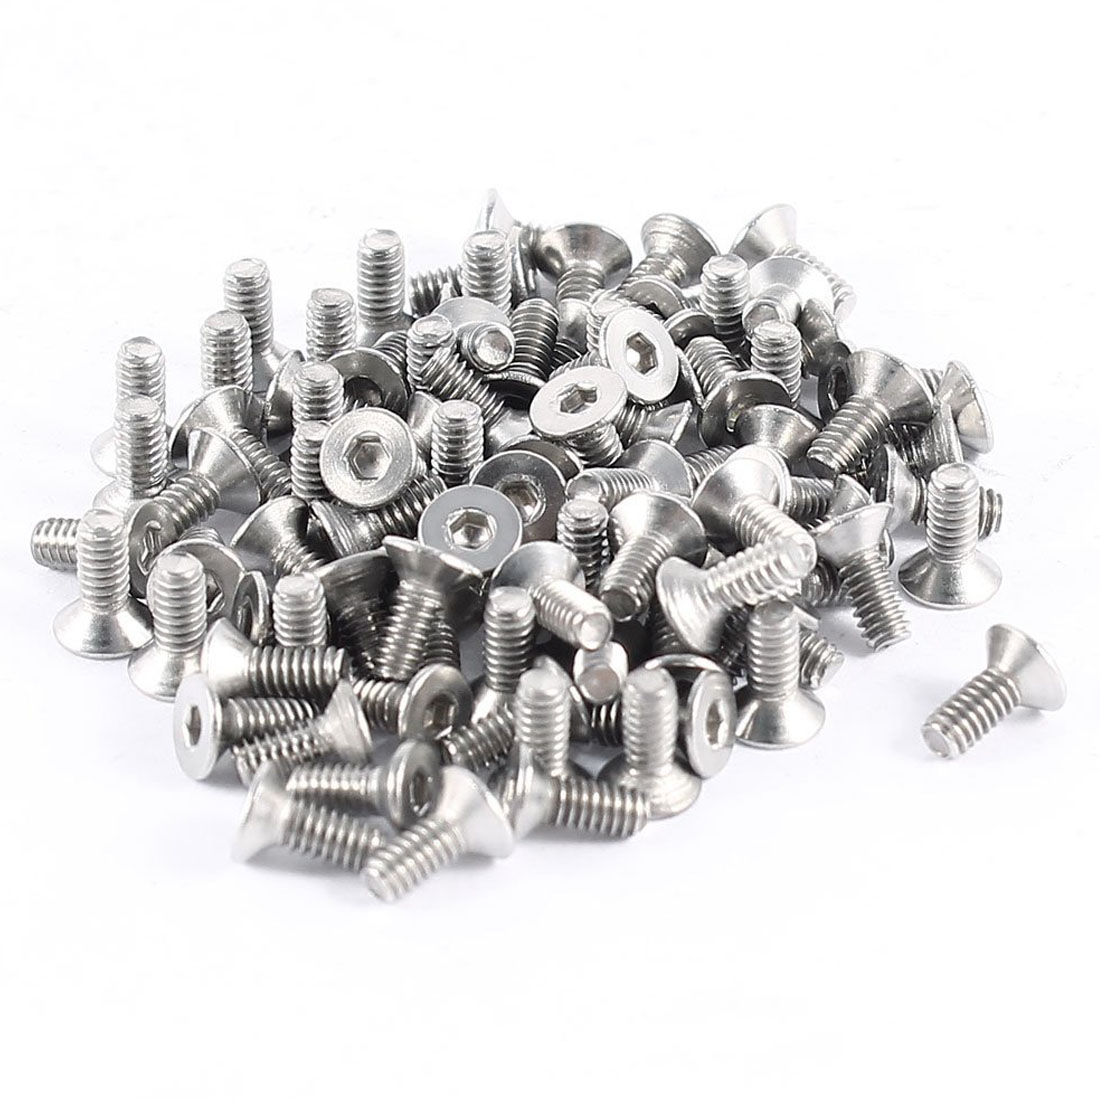 LIXF HOT 100pcs 304HC Stainless Steel Hex Countersunk Flat Bolts Screws <font><b>M2x5mm</b></font> image